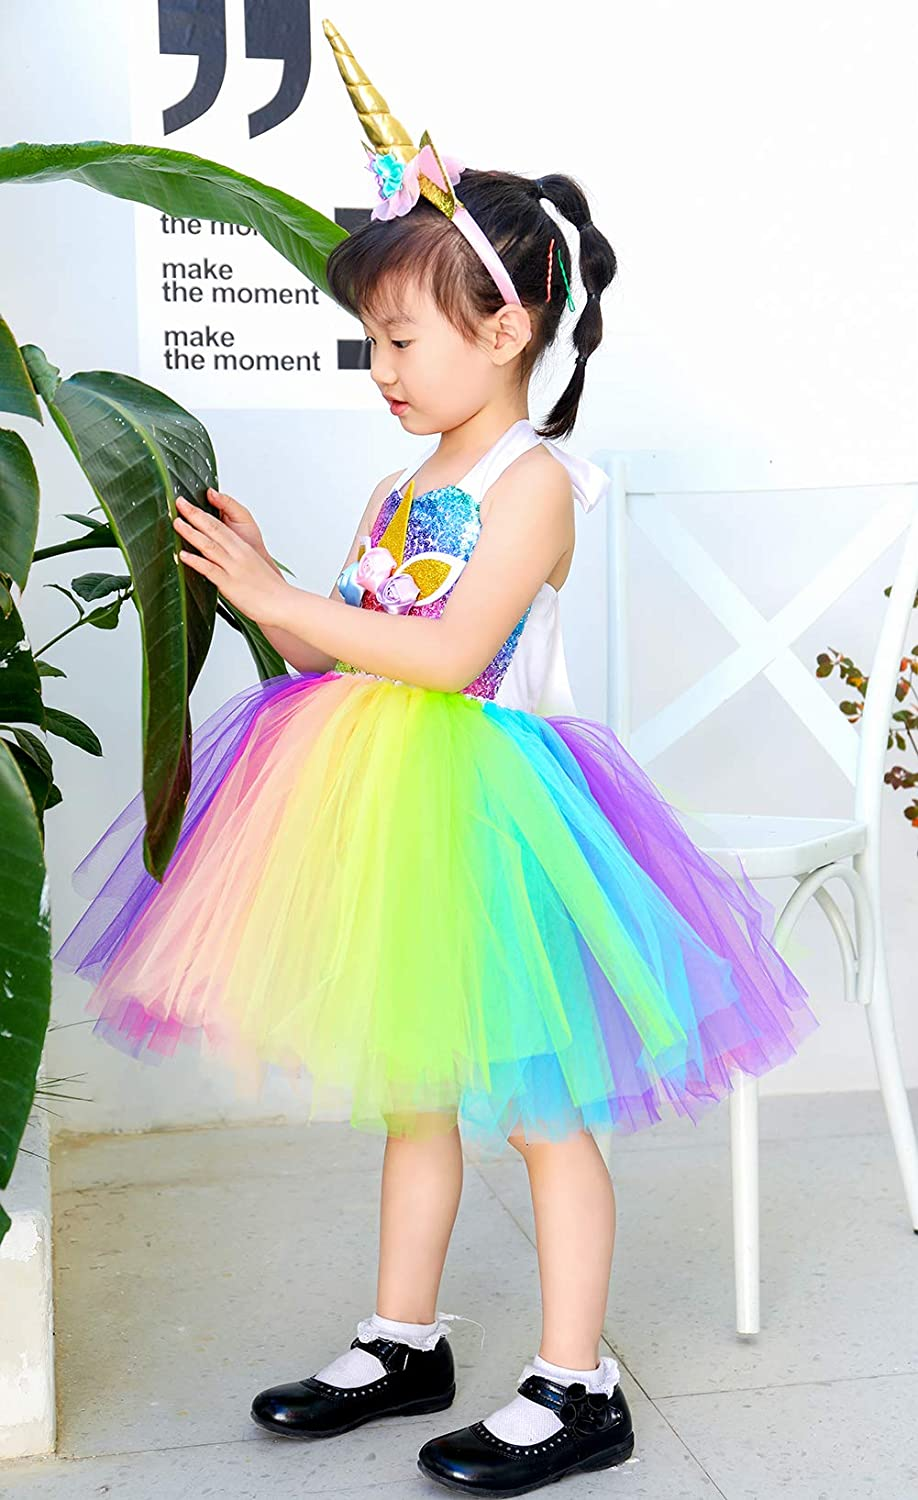 Tutu Dreams Unicorn Costume for Girls 1-10Y Sequin Princess Dress with Headband Halloween Dress Up Birthday Party Gifts